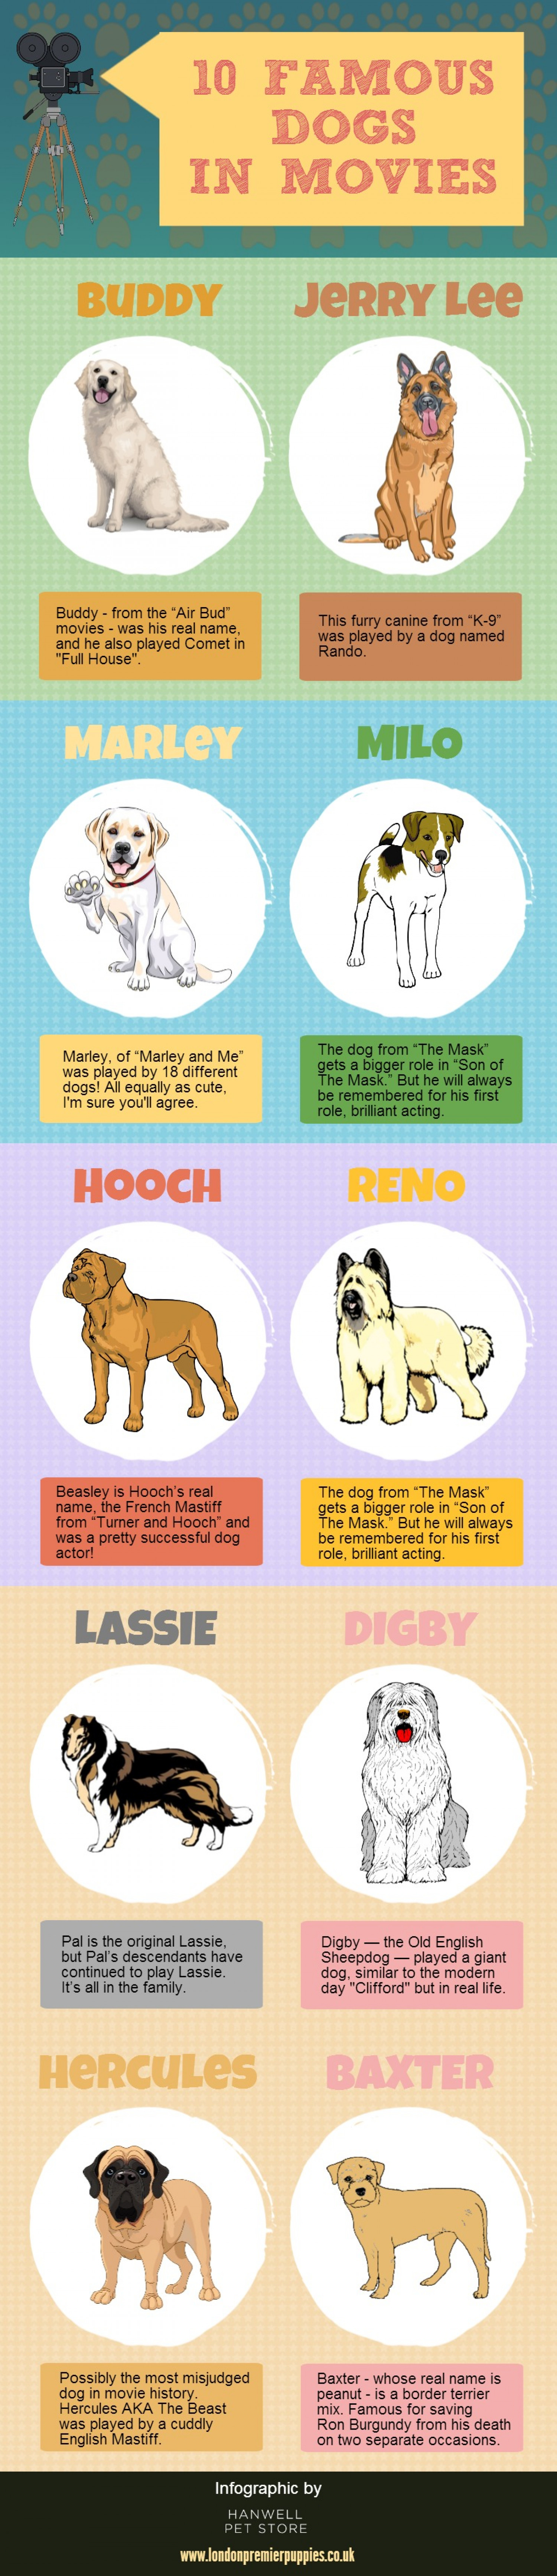 10 Famous Dogs in Movies Infographic